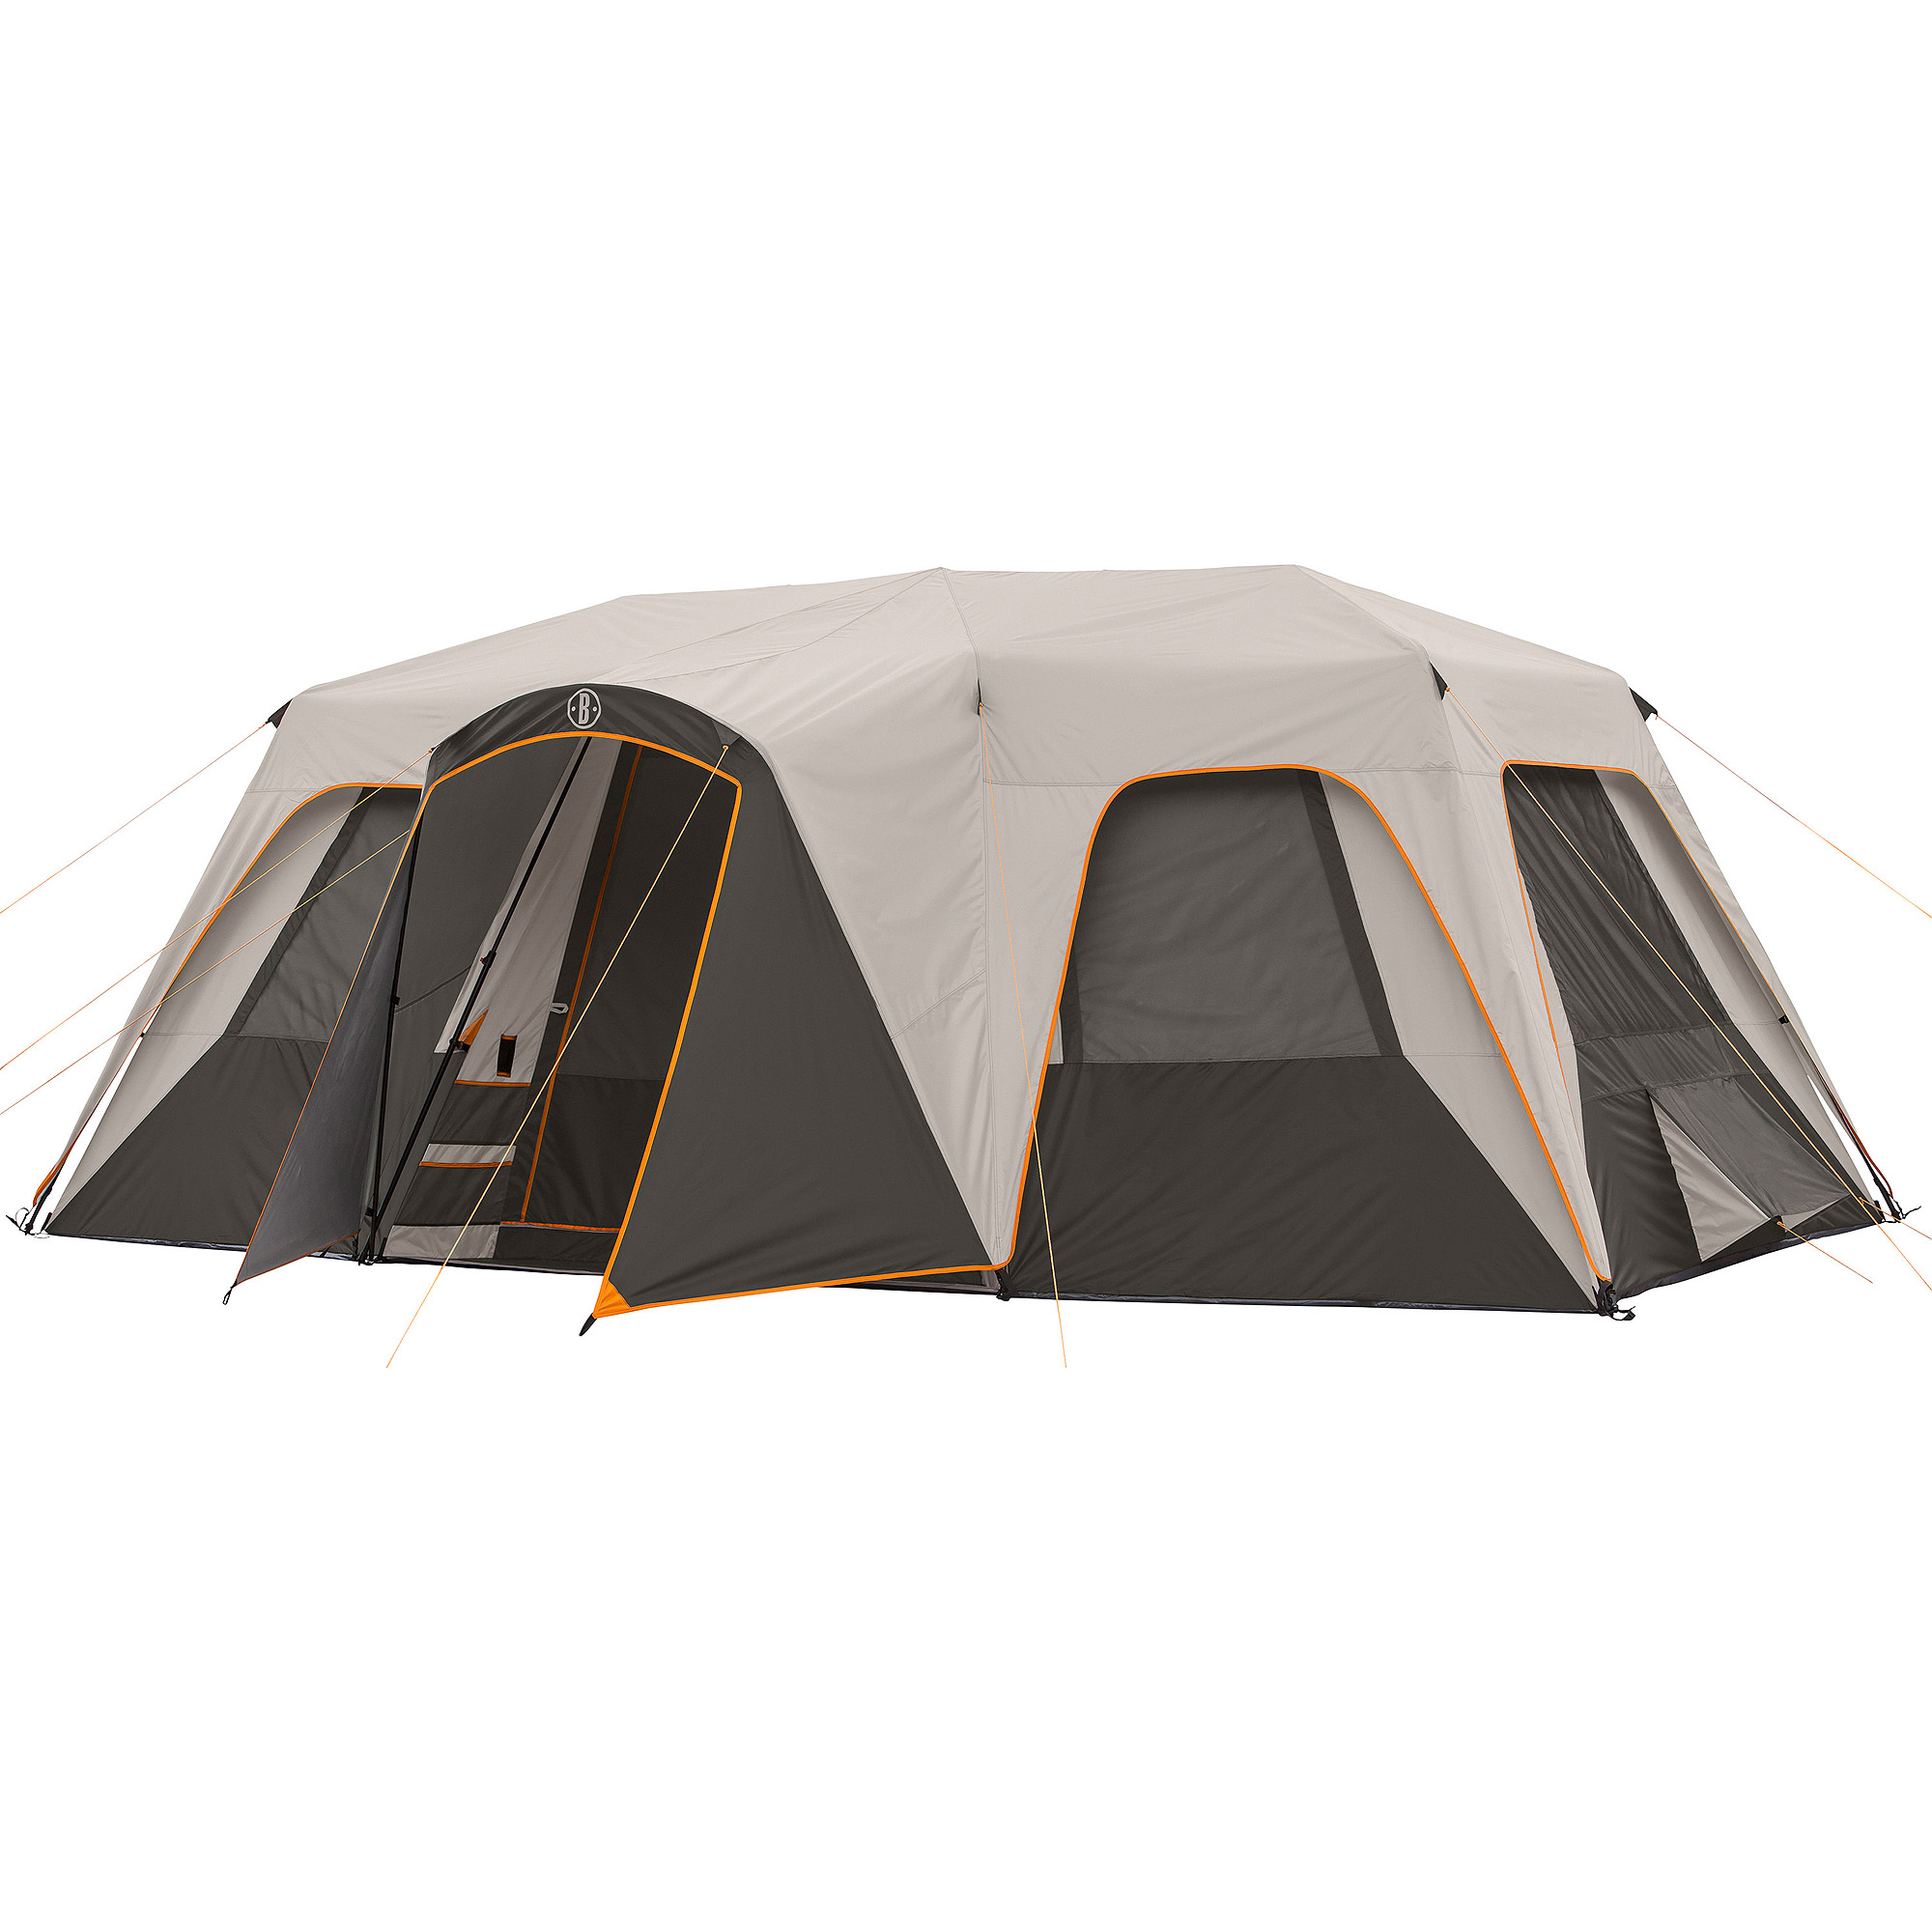 Bushnell Shield Series 12 Person 3 Room Instant Cabin Tent - Walmart.com  sc 1 st  Walmart & Bushnell Shield Series 12 Person 3 Room Instant Cabin Tent ...